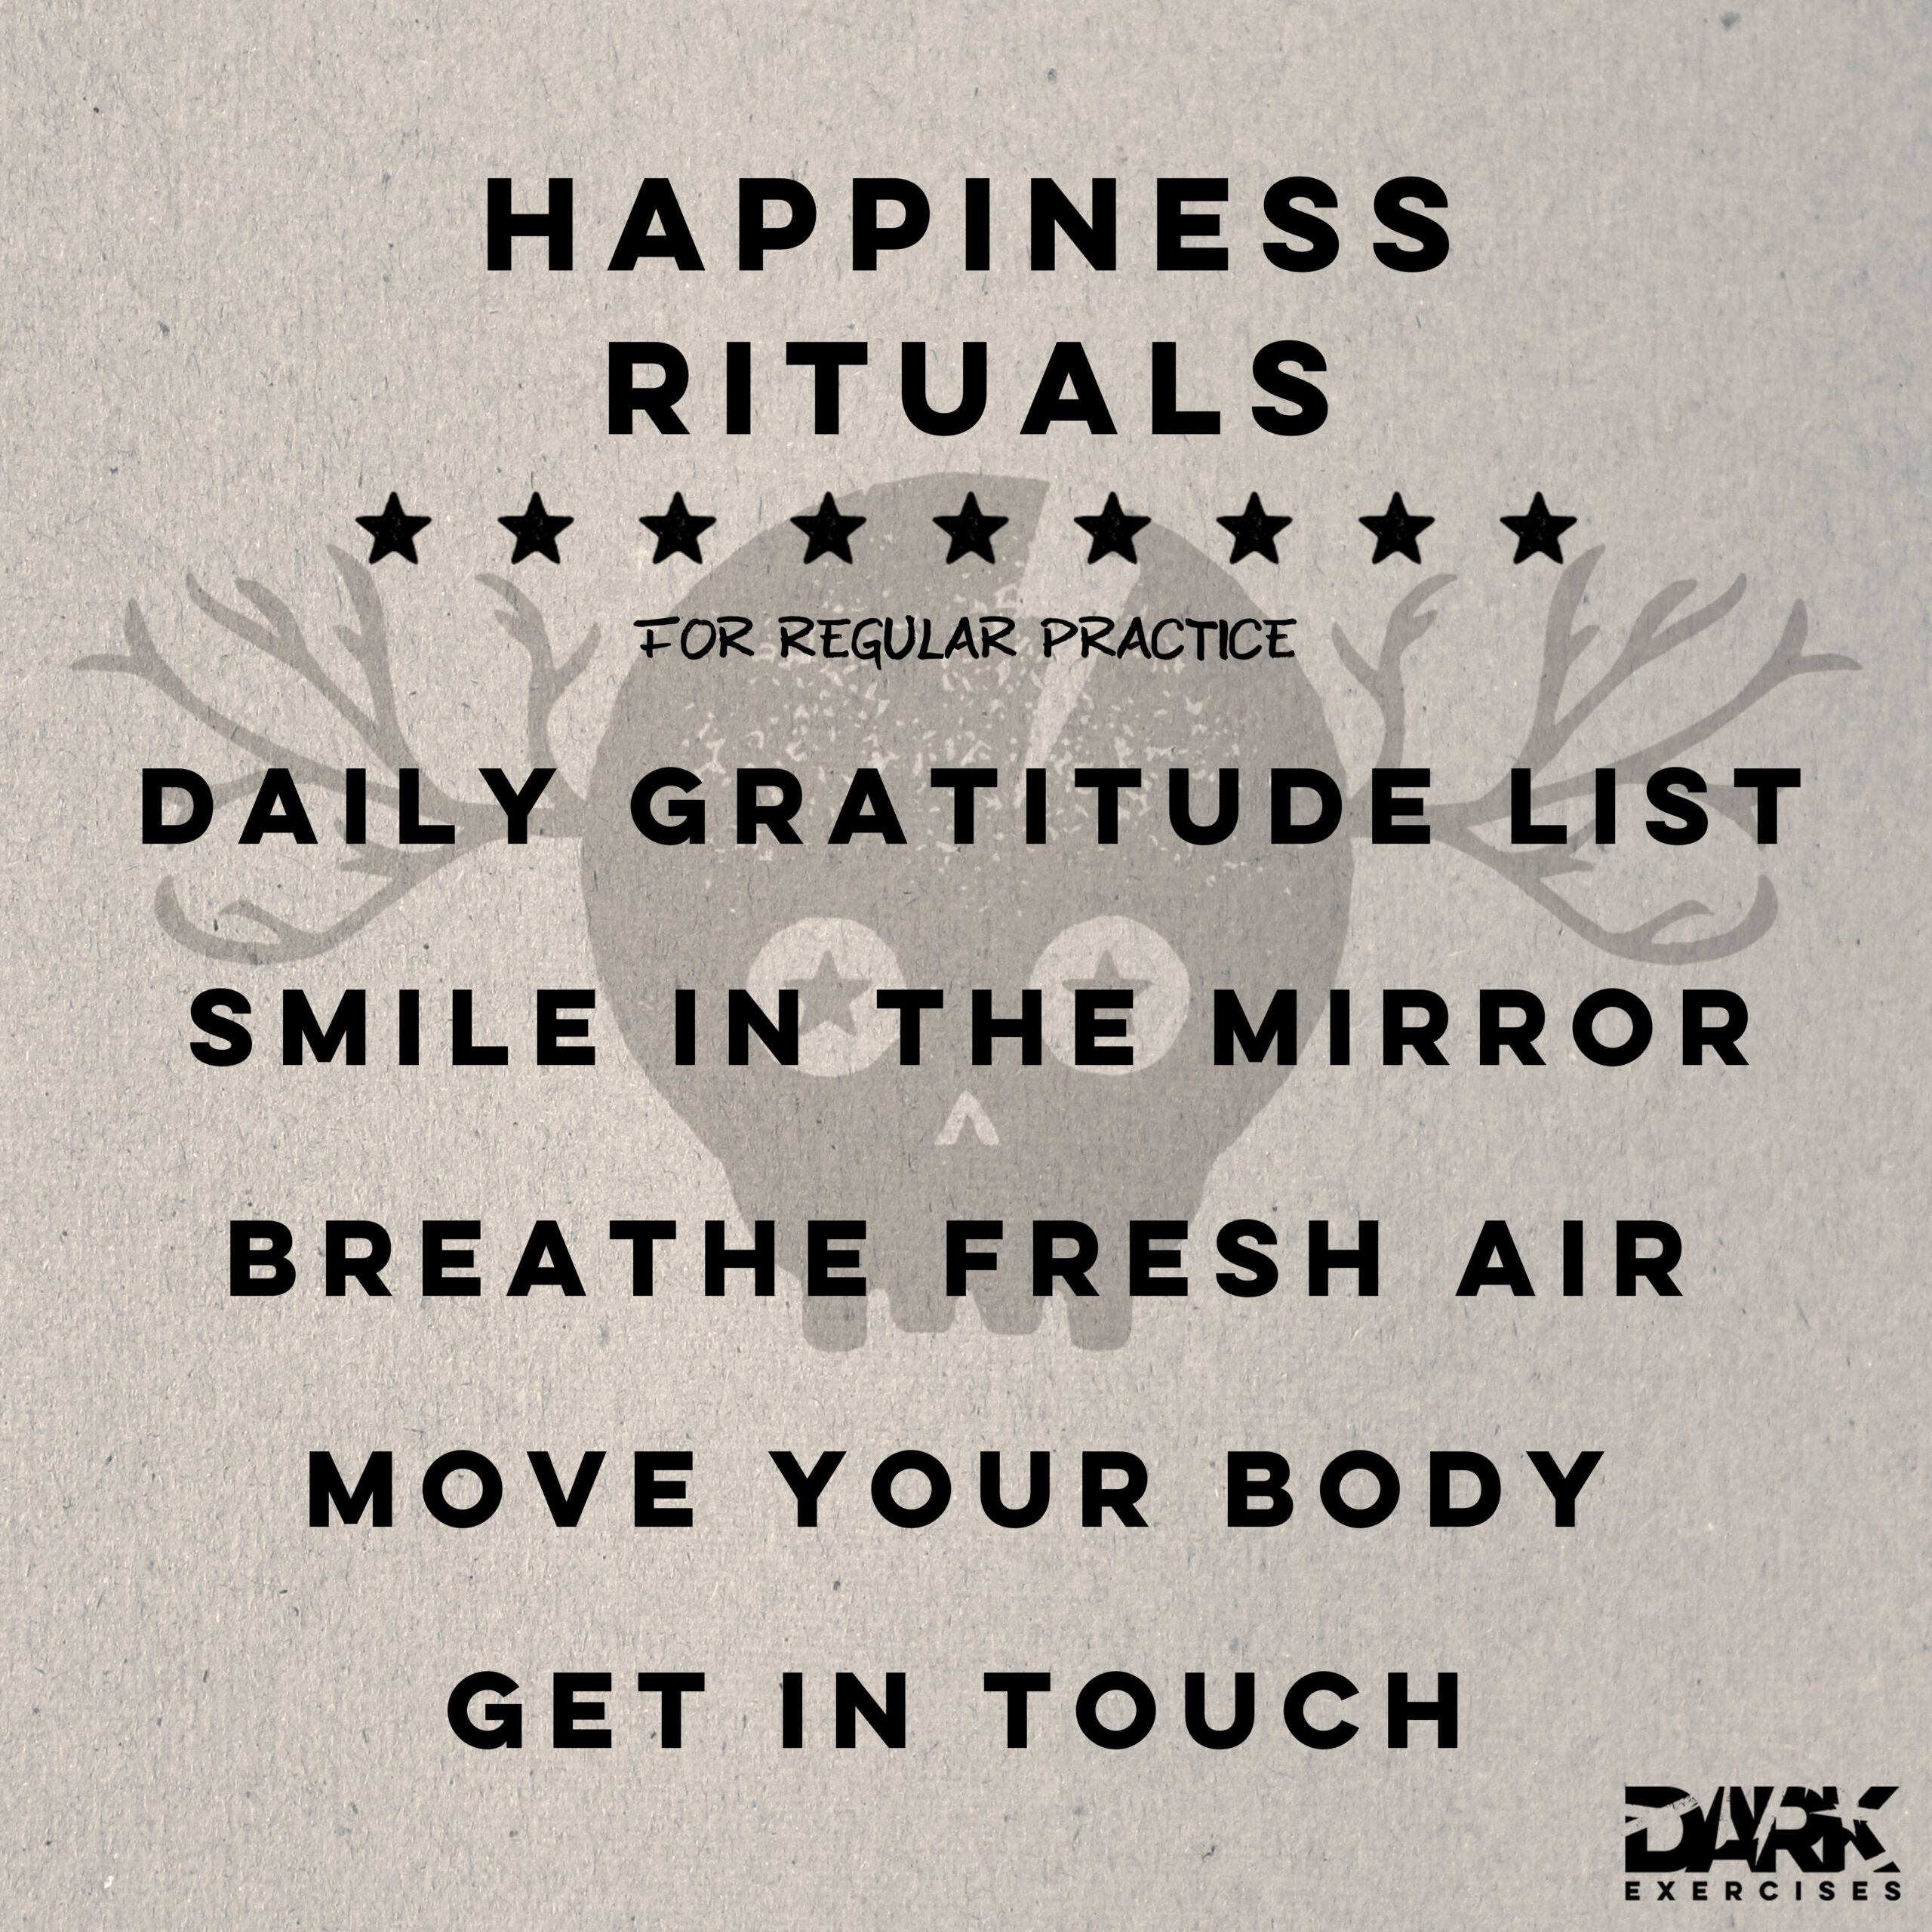 Happiness Rituals